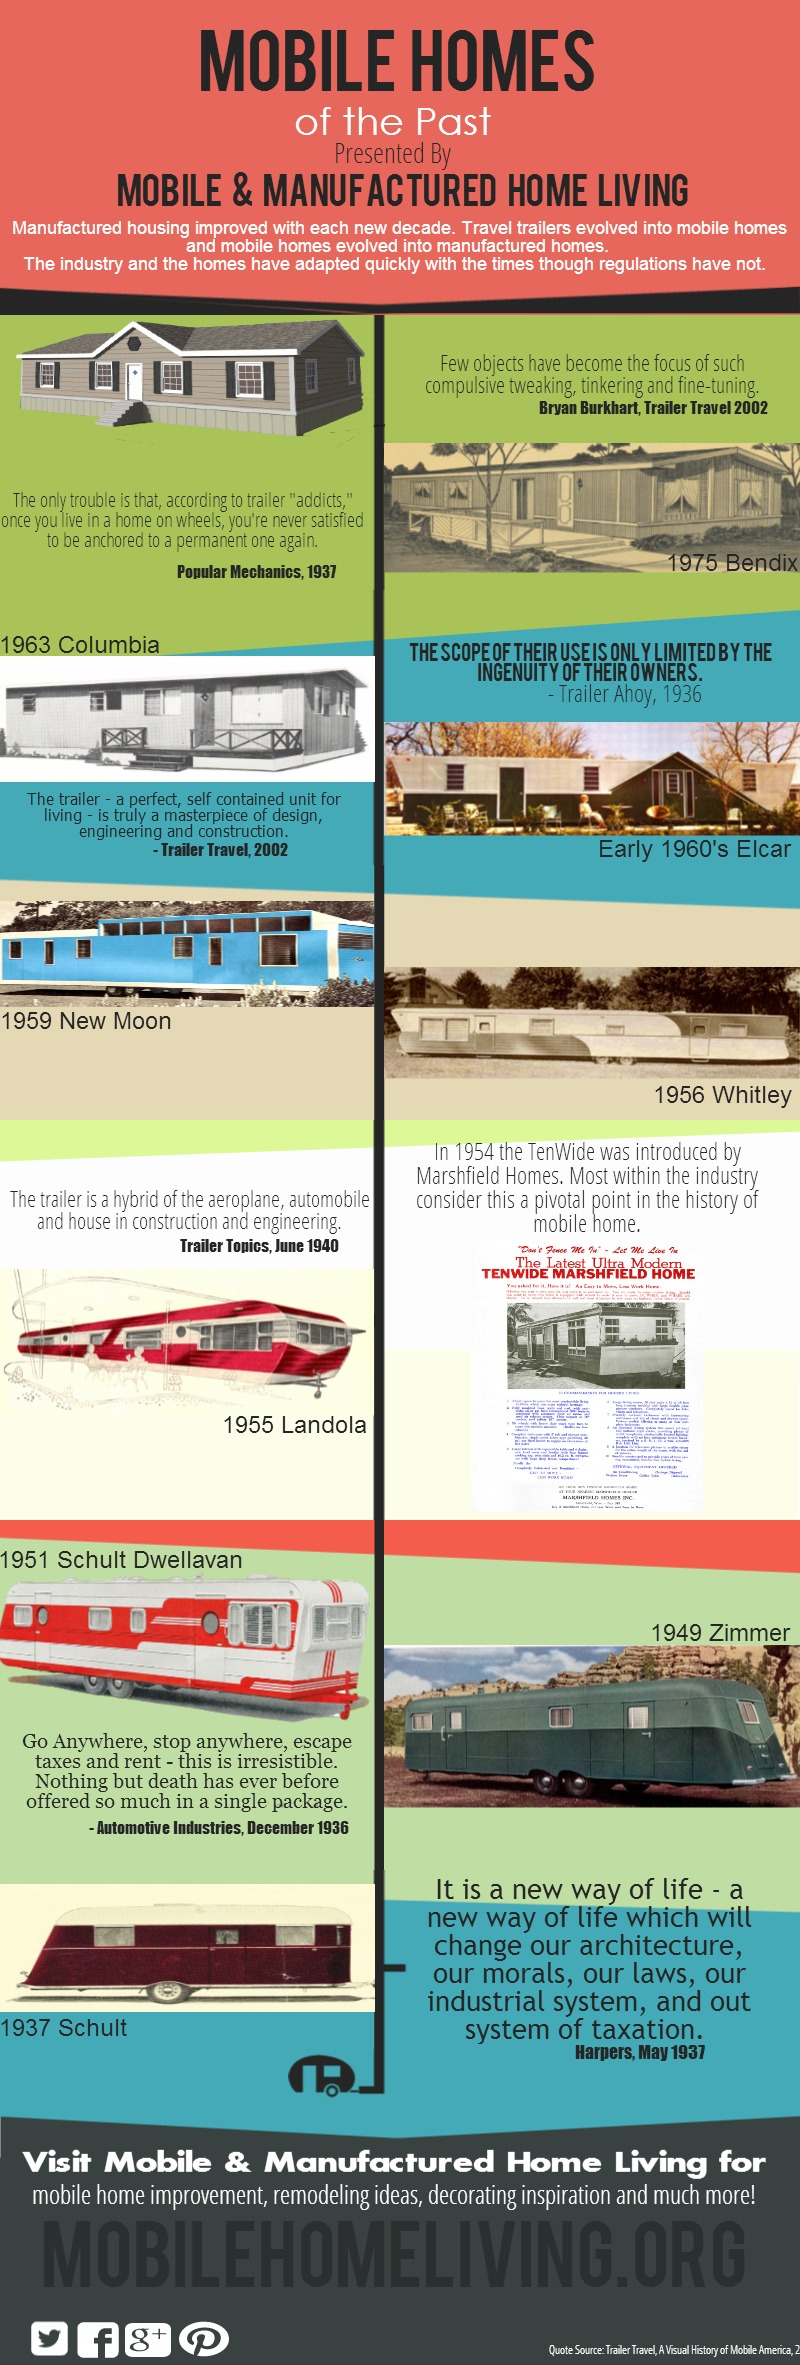 History of Mobile Homes Infographic